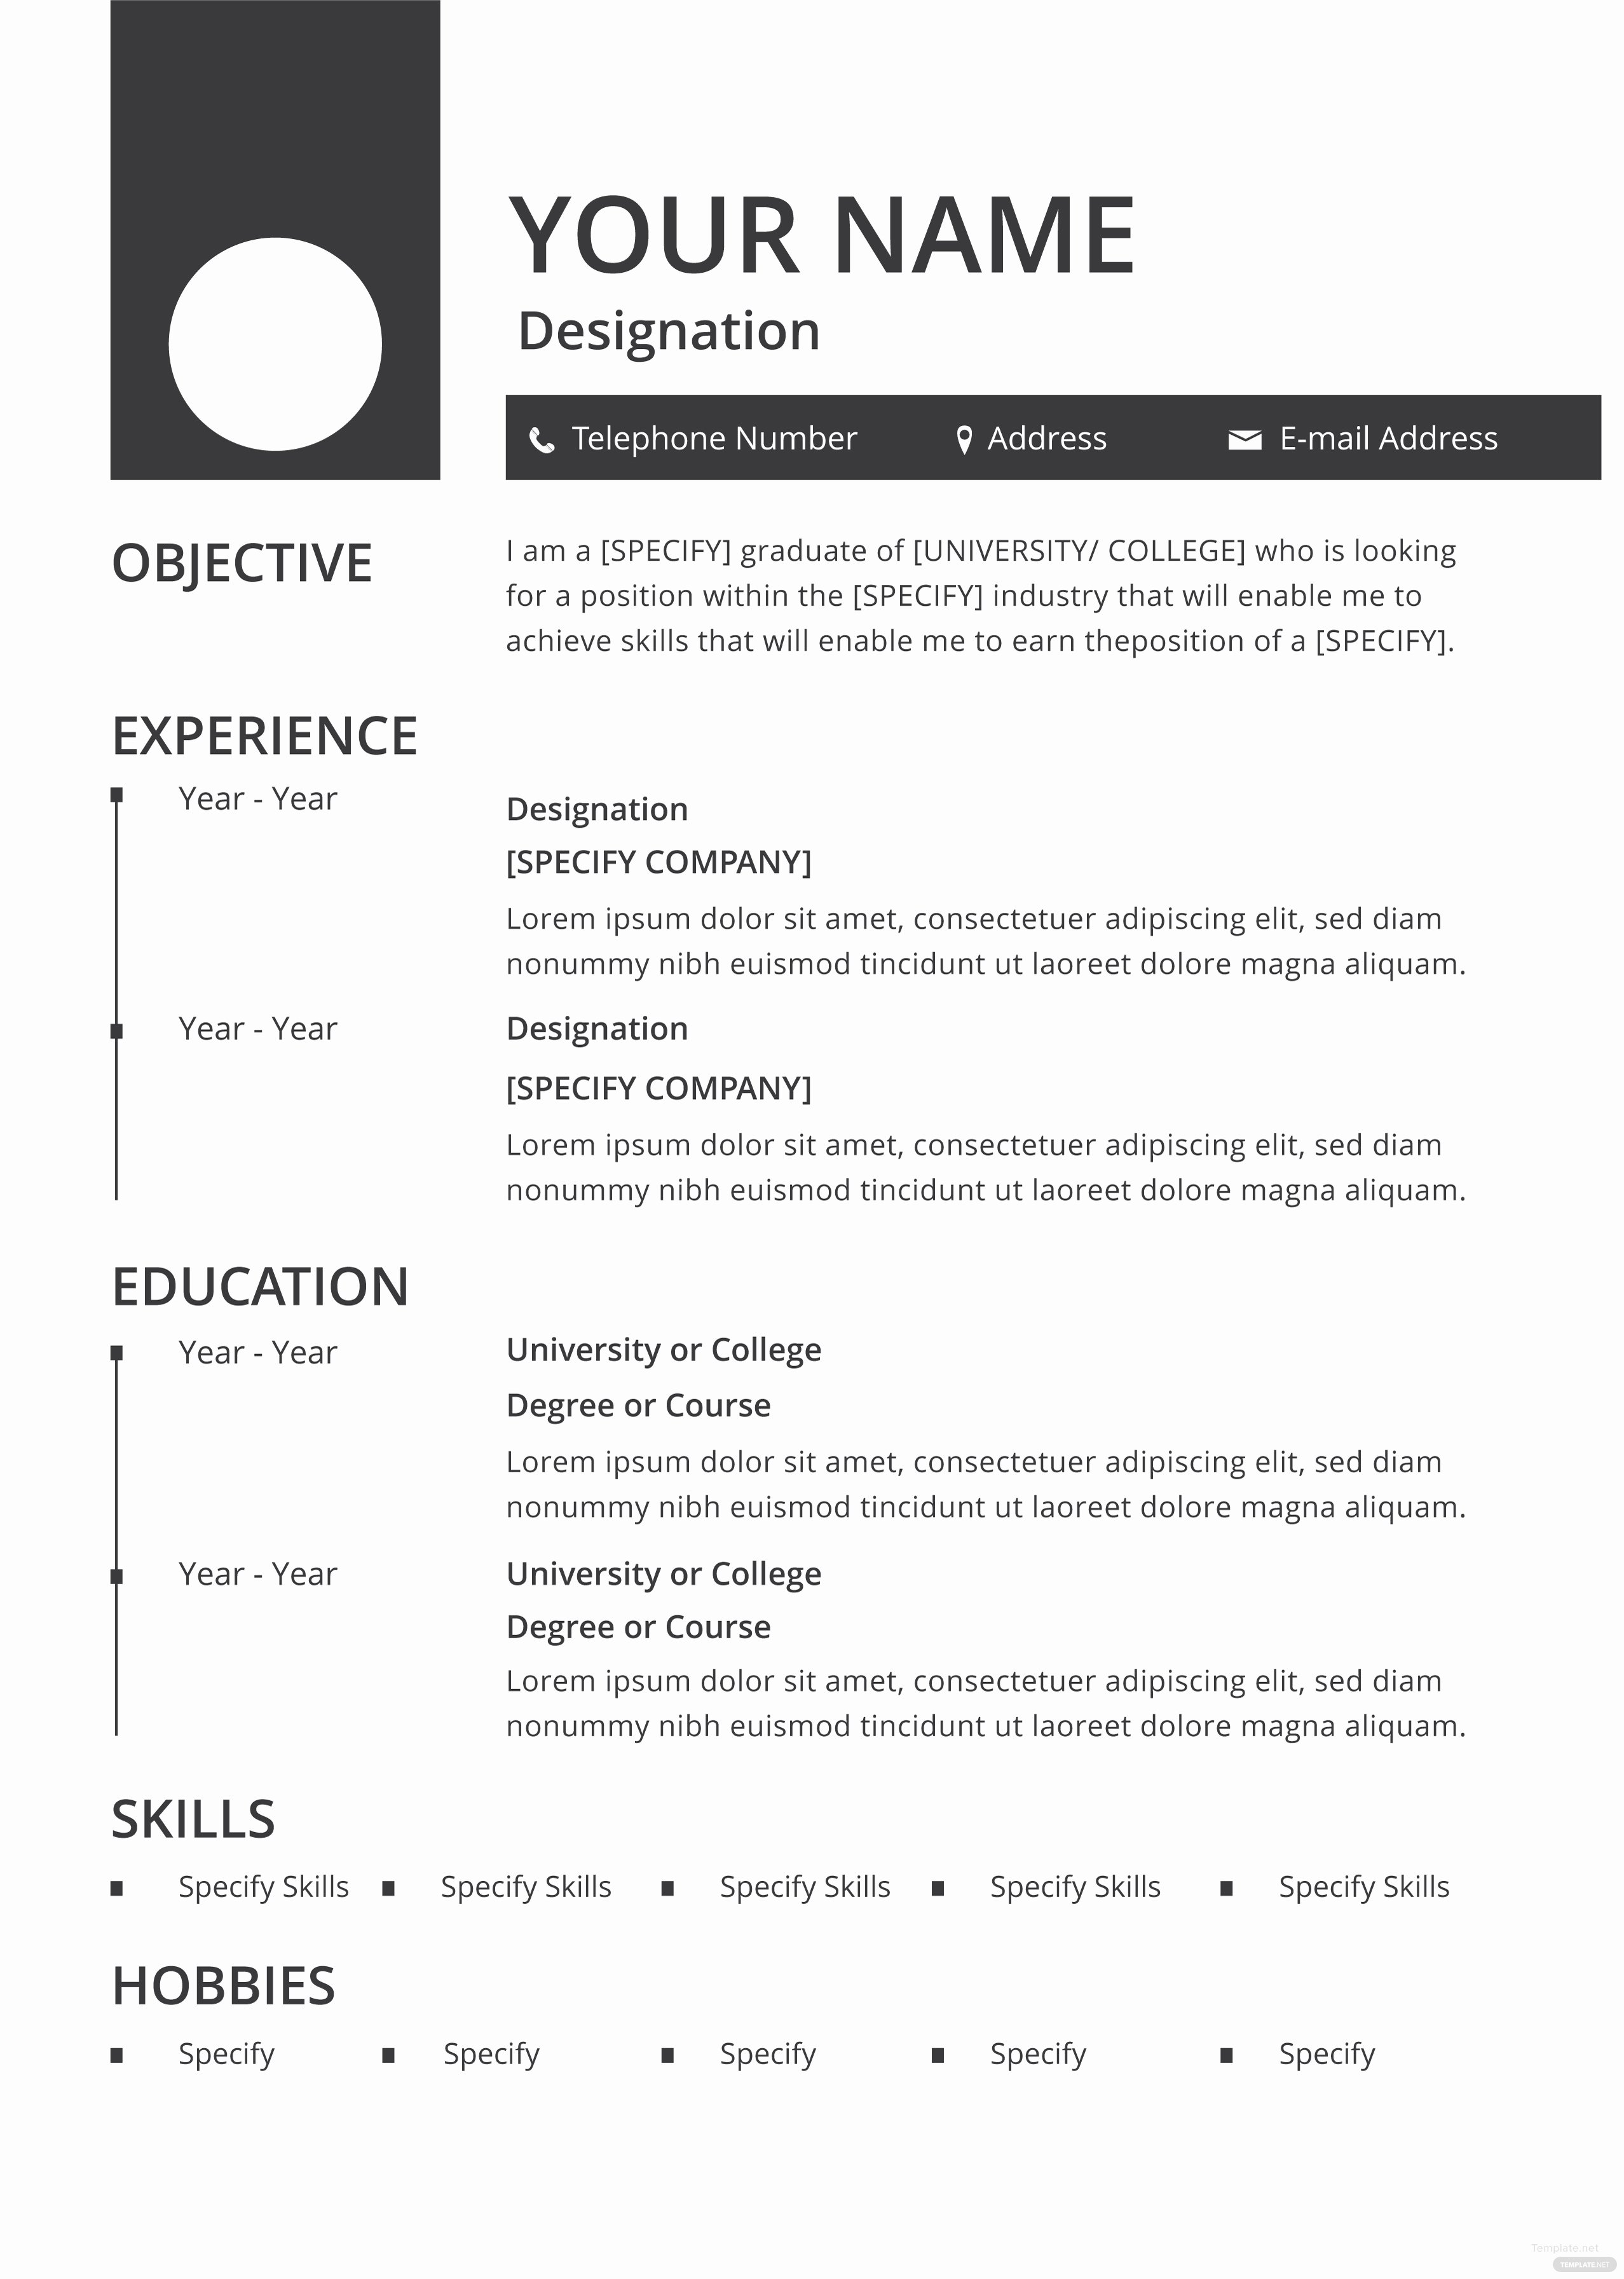 Free Blank Resume and Cv Template In Adobe Shop